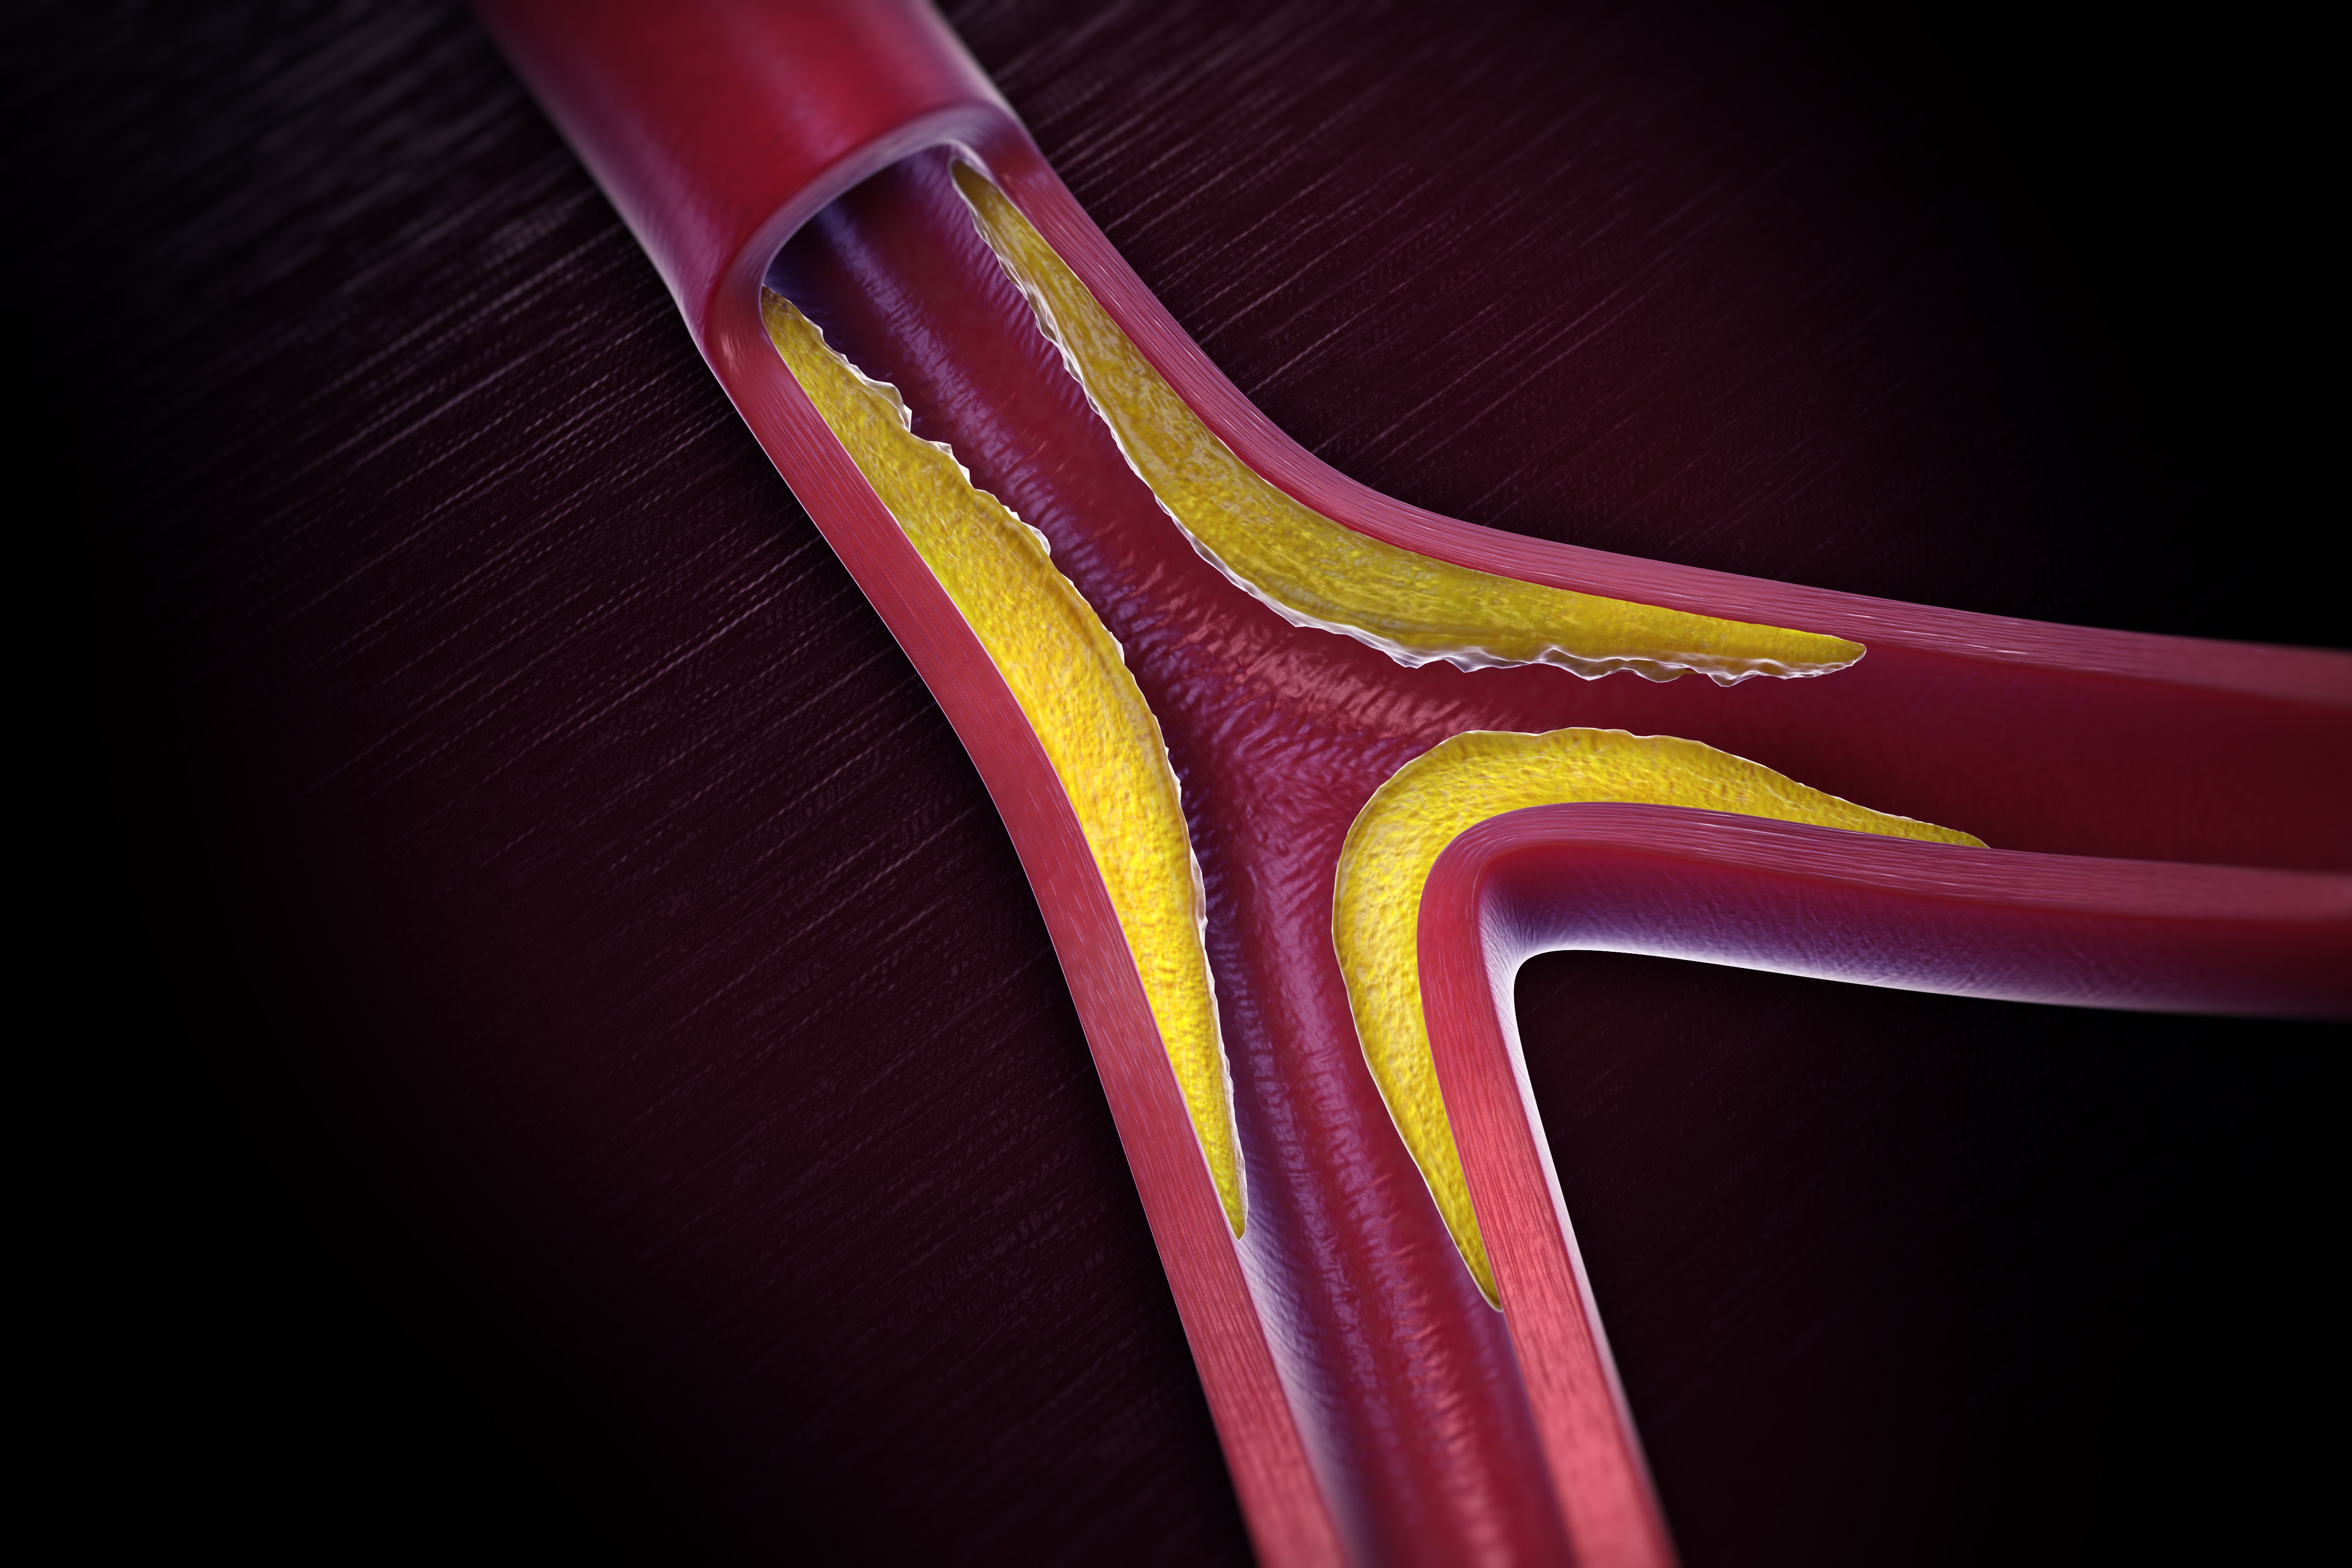 Overview Of Peripheral Artery Disease